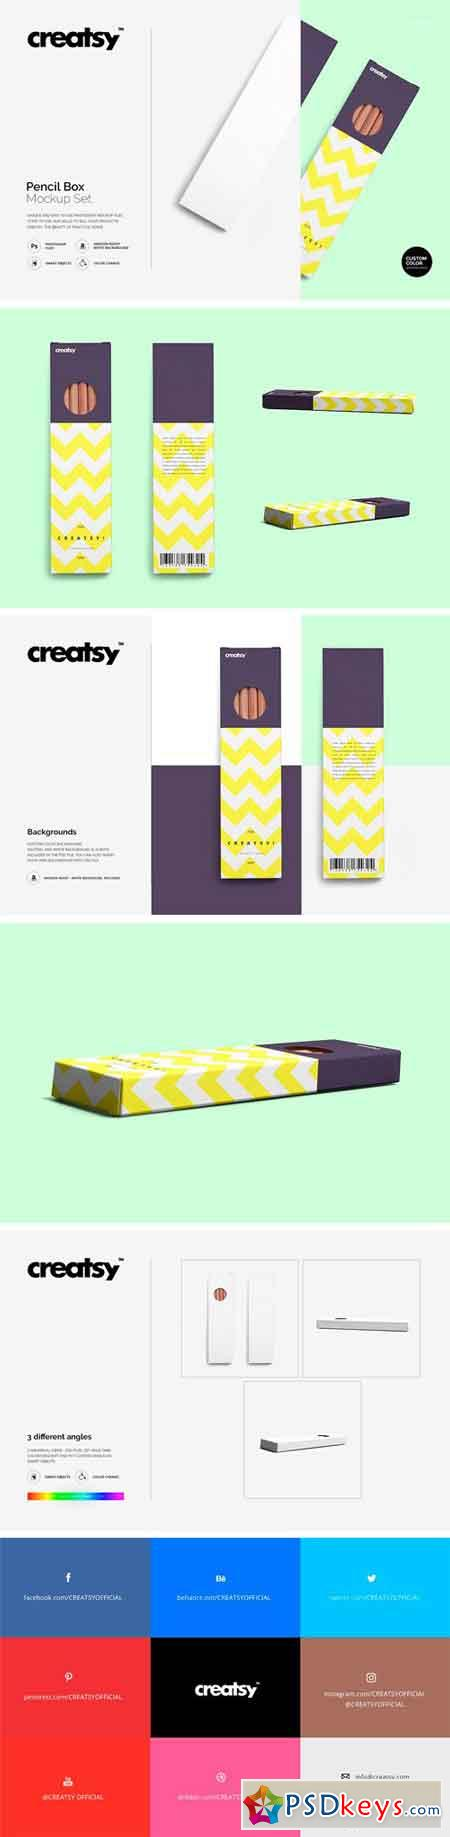 Pencil Box Mockup Set 1299939